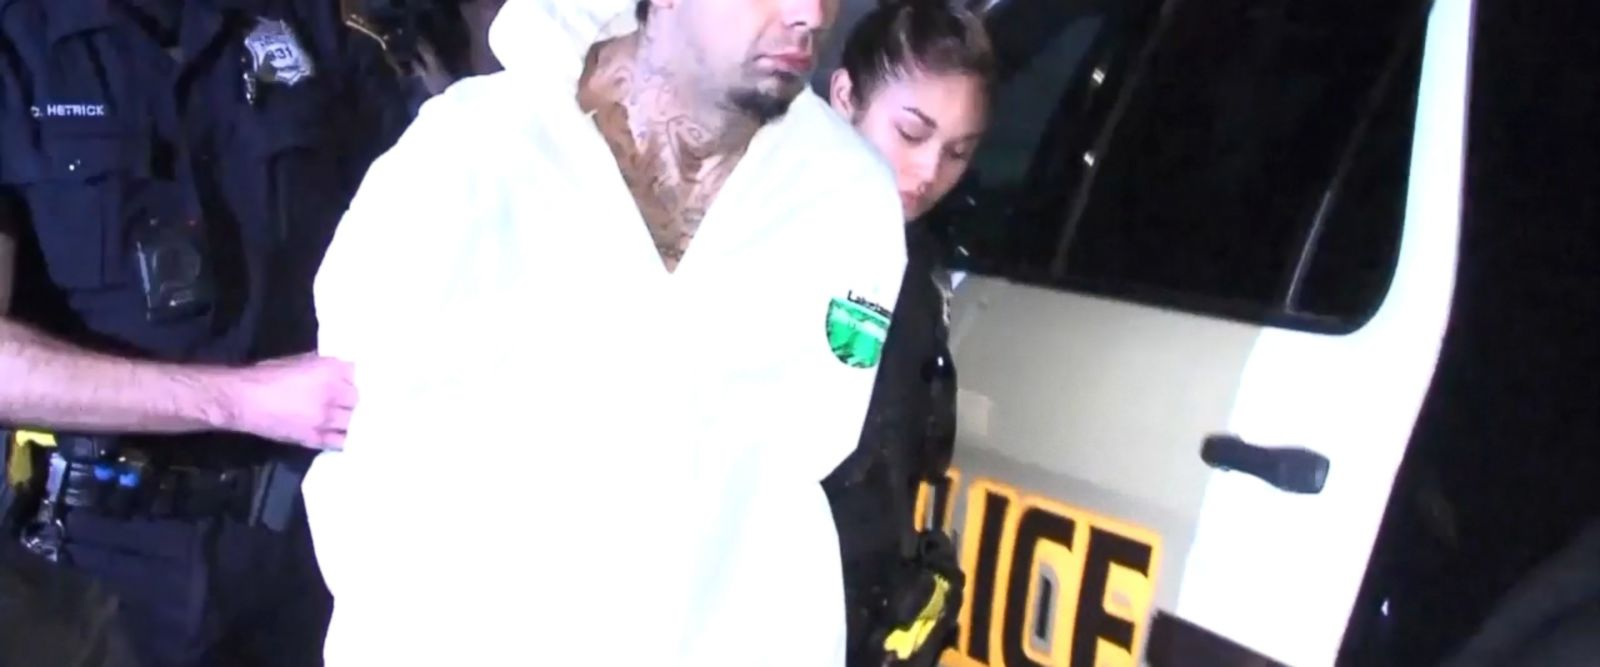 Jason Prieto has been charged with capital murder and aggravated robbery in the One Rolling Oaks Mall shooting.